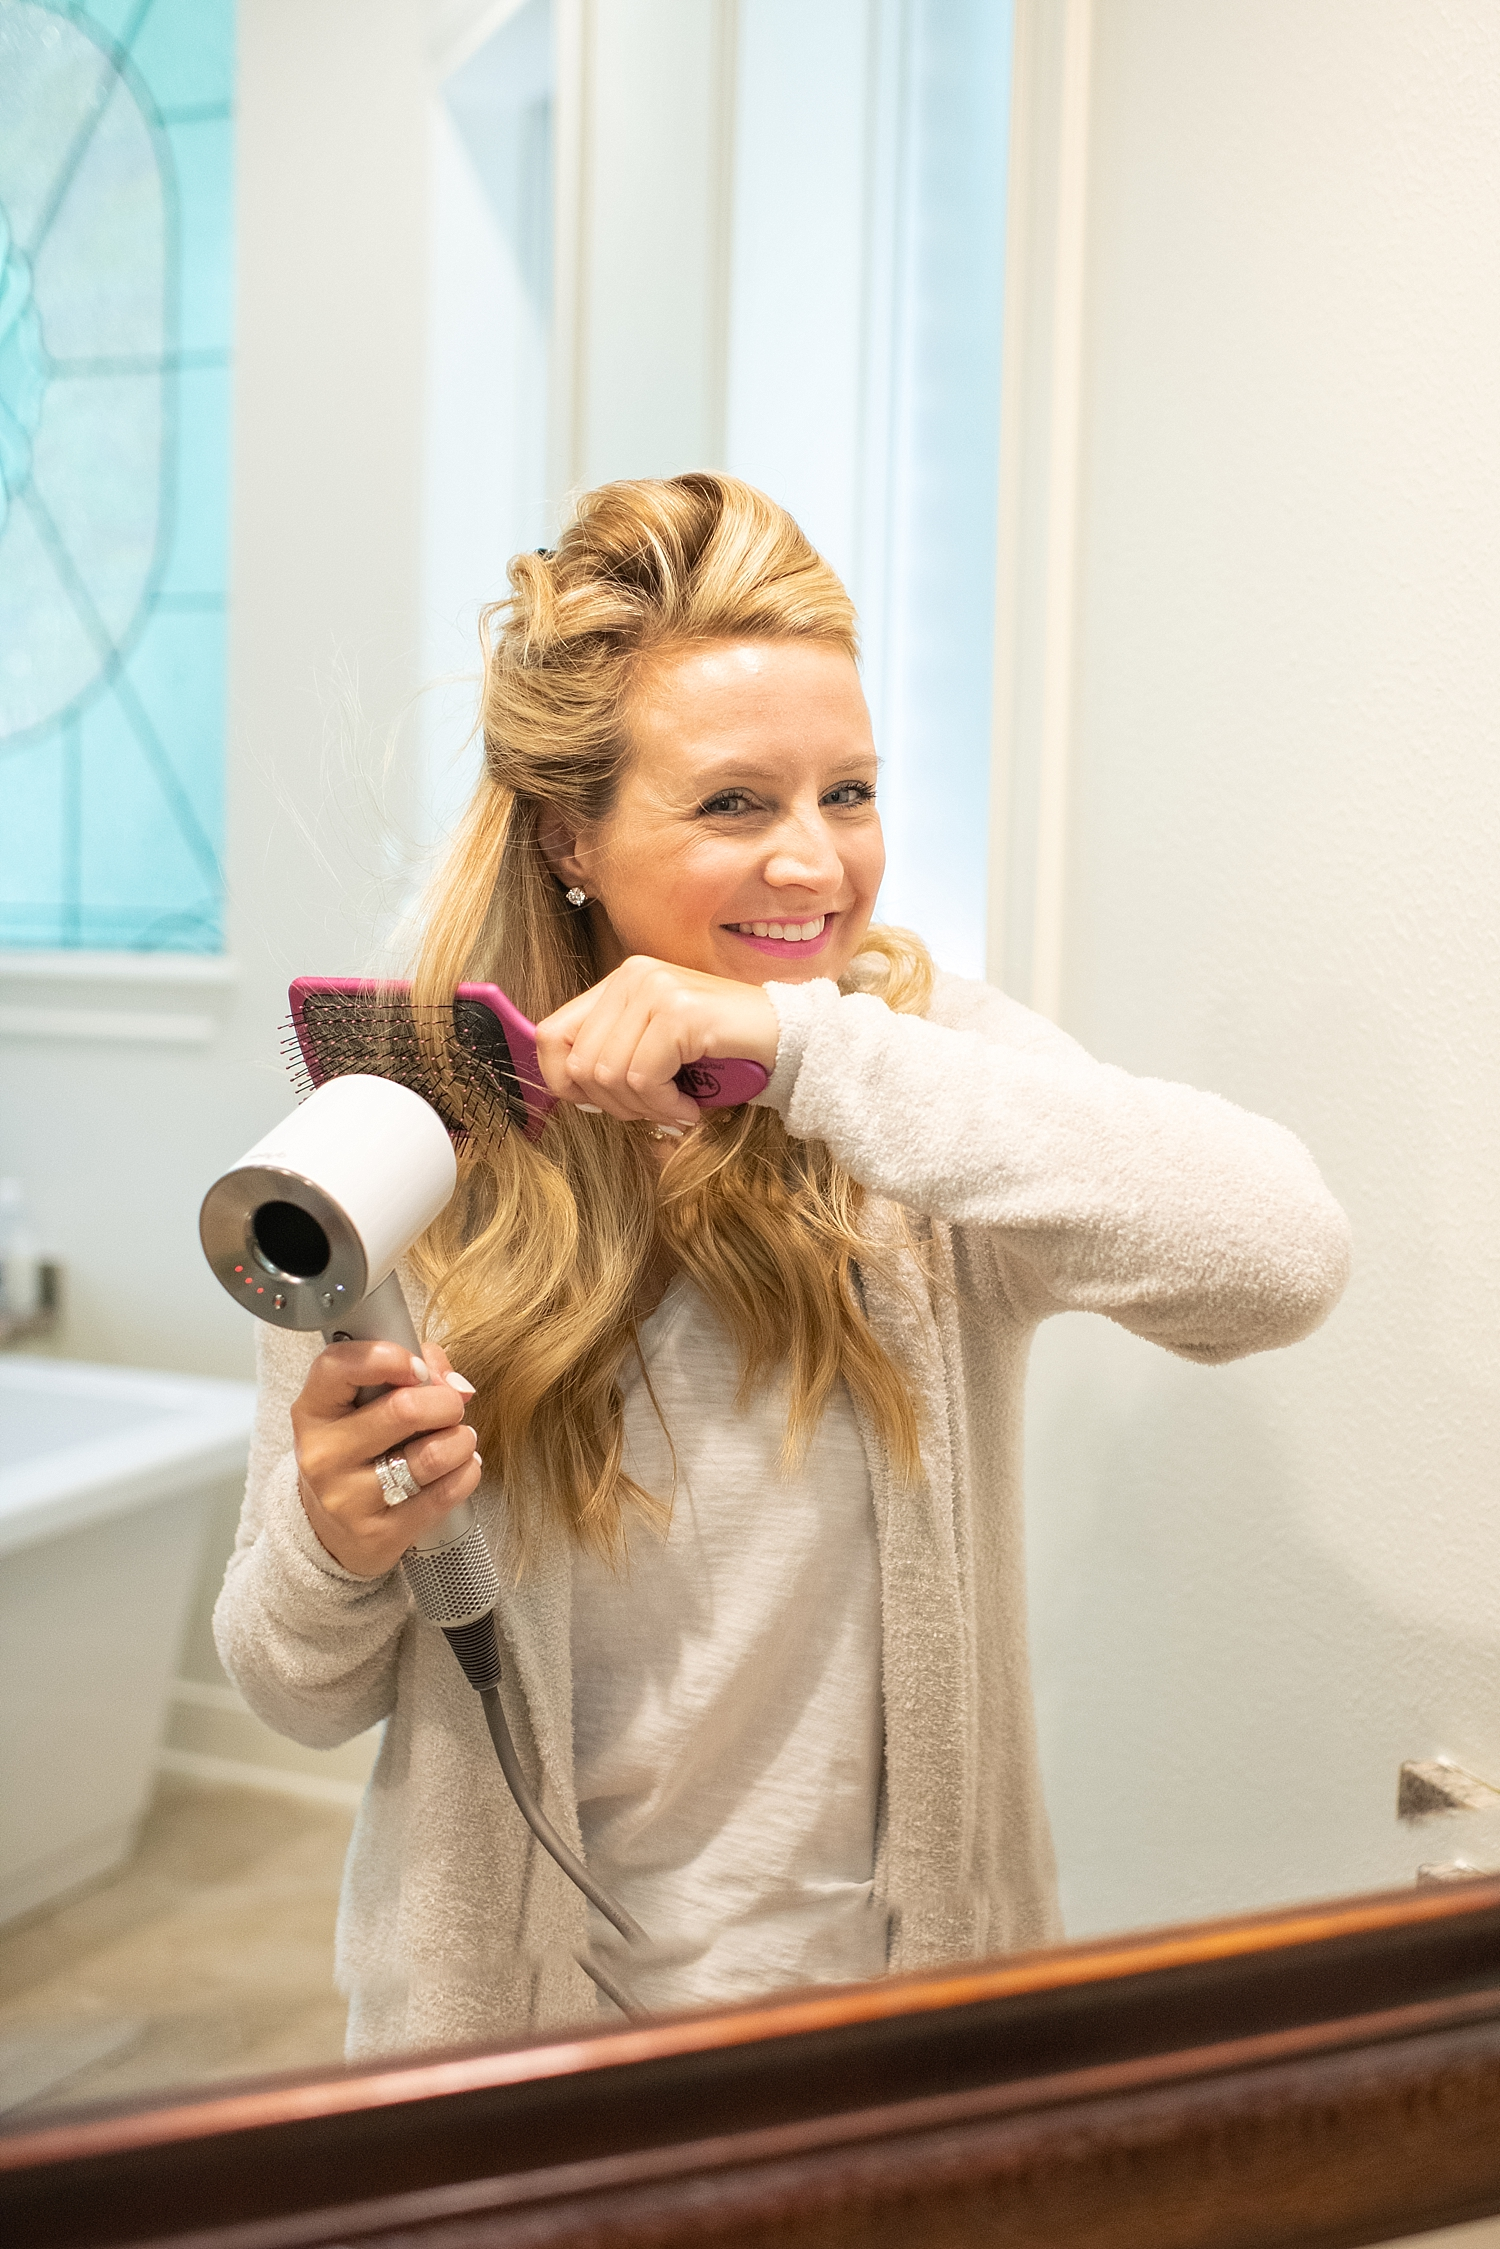 Dyson Supersonic Hair Dryer review featured by Houston life and style blogger, Fancy Ashley